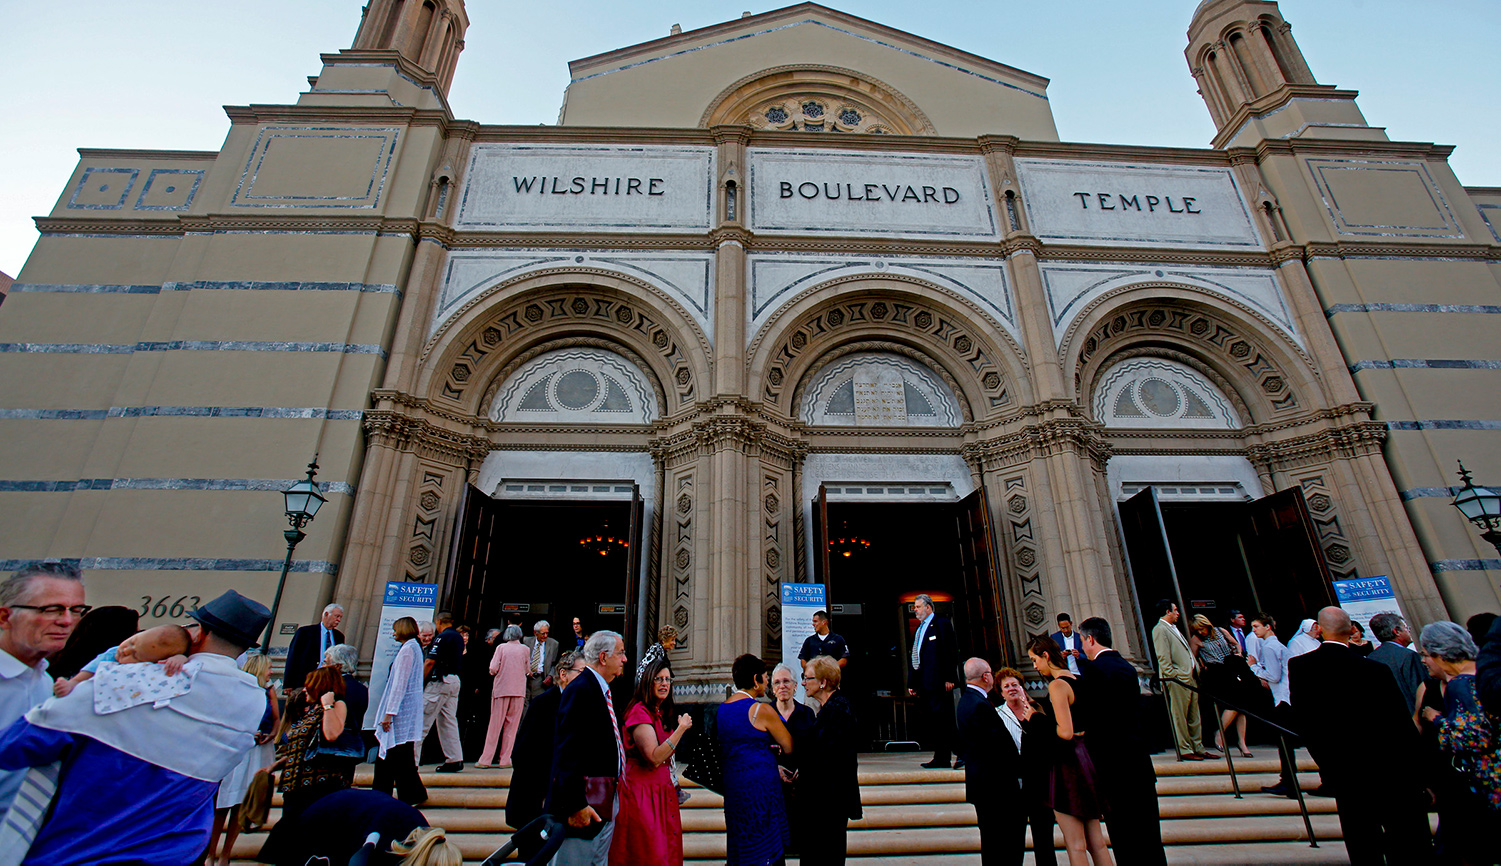 Congregants outside Wilshire Boulevard Temple in Los Angeles. Anne Cusack/Los Angeles Times via Getty Images.